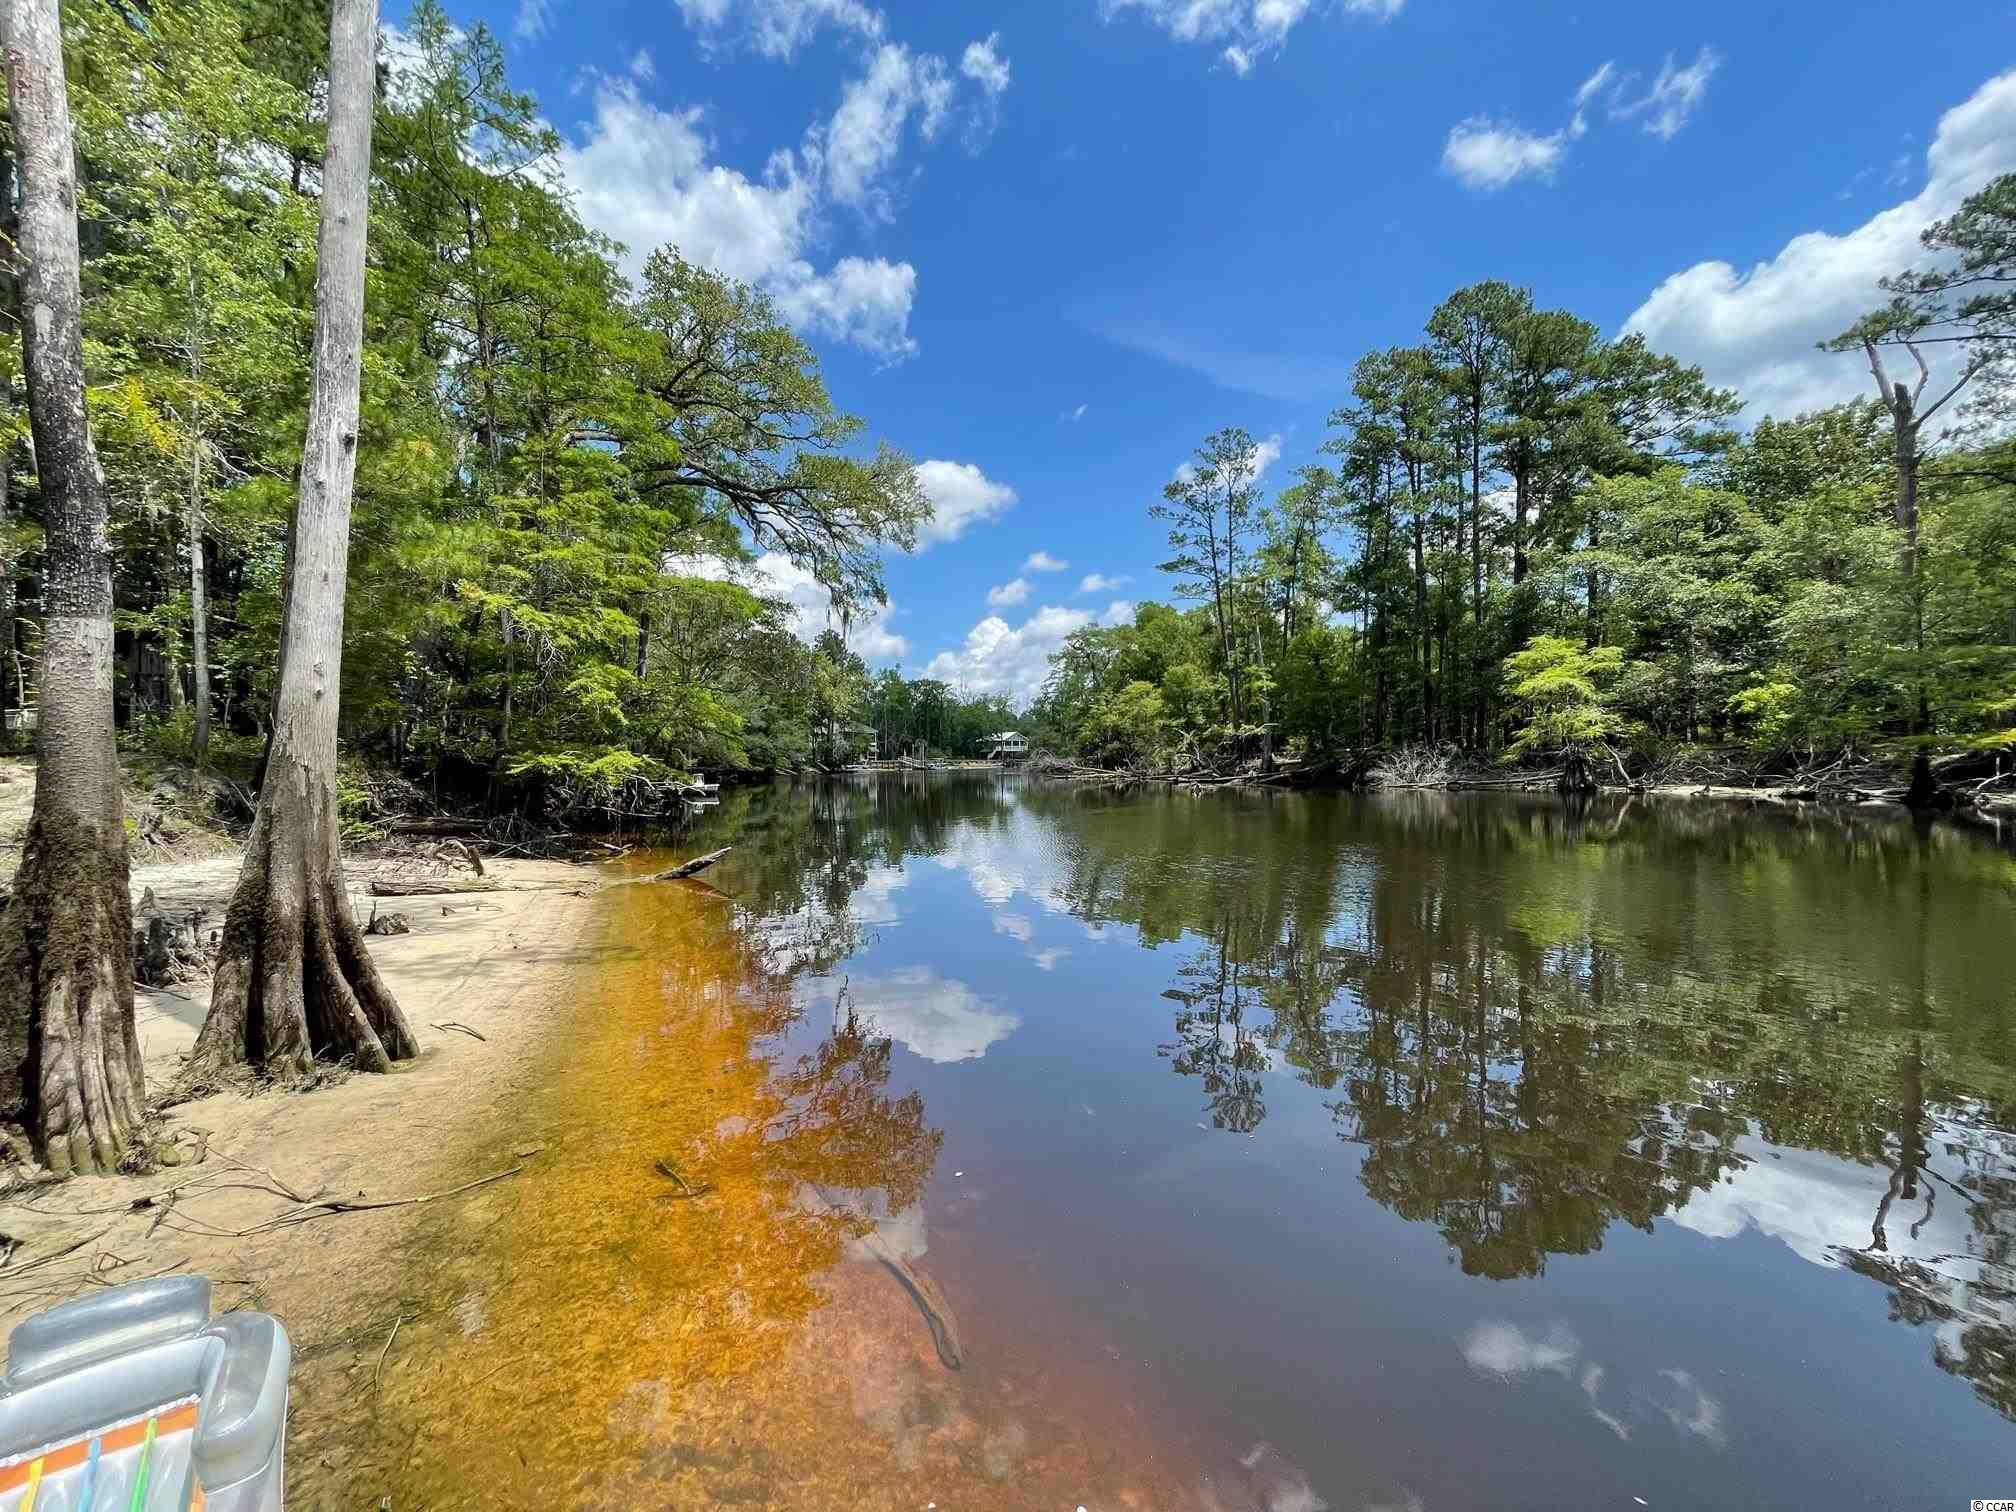 Beautiful acre home-site located on the Waccamaw River. This is a great location to build your river front dream home. This lot offers nearly 180+/- ft of river frontage, with utilities already in place for home. Not only does this lot already have utilities in place, but it also includes home plans, engineering, and elevation certificate. Located close to down-town Conway, and the Marina. Call today for more information!   * This lot does flood, home would need to be built on stilts.*